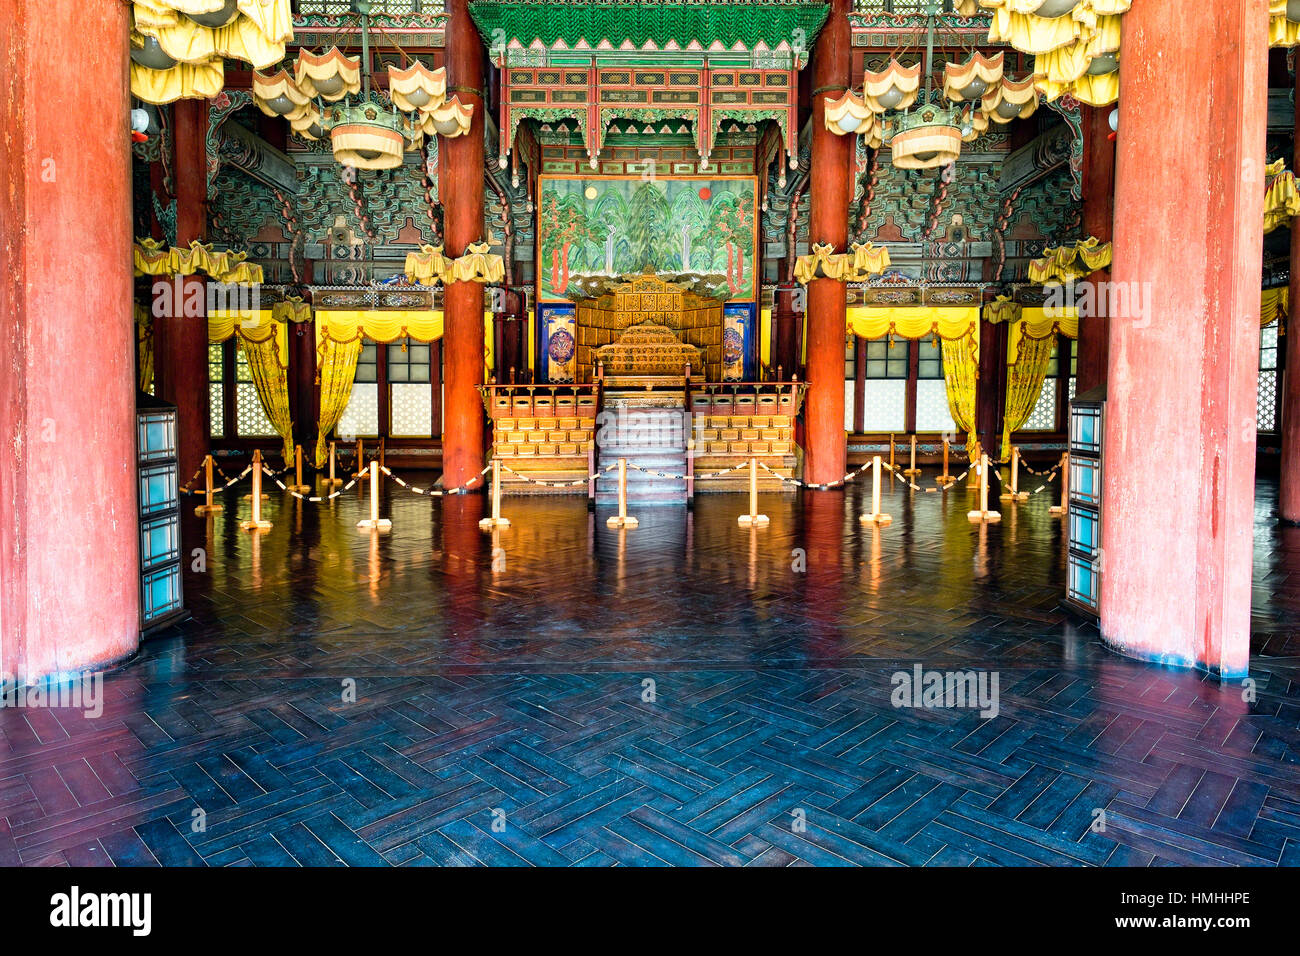 Throne Hall Building  Interior in Gyeongbokgung Palace, Seoul, South Korea - Stock Image